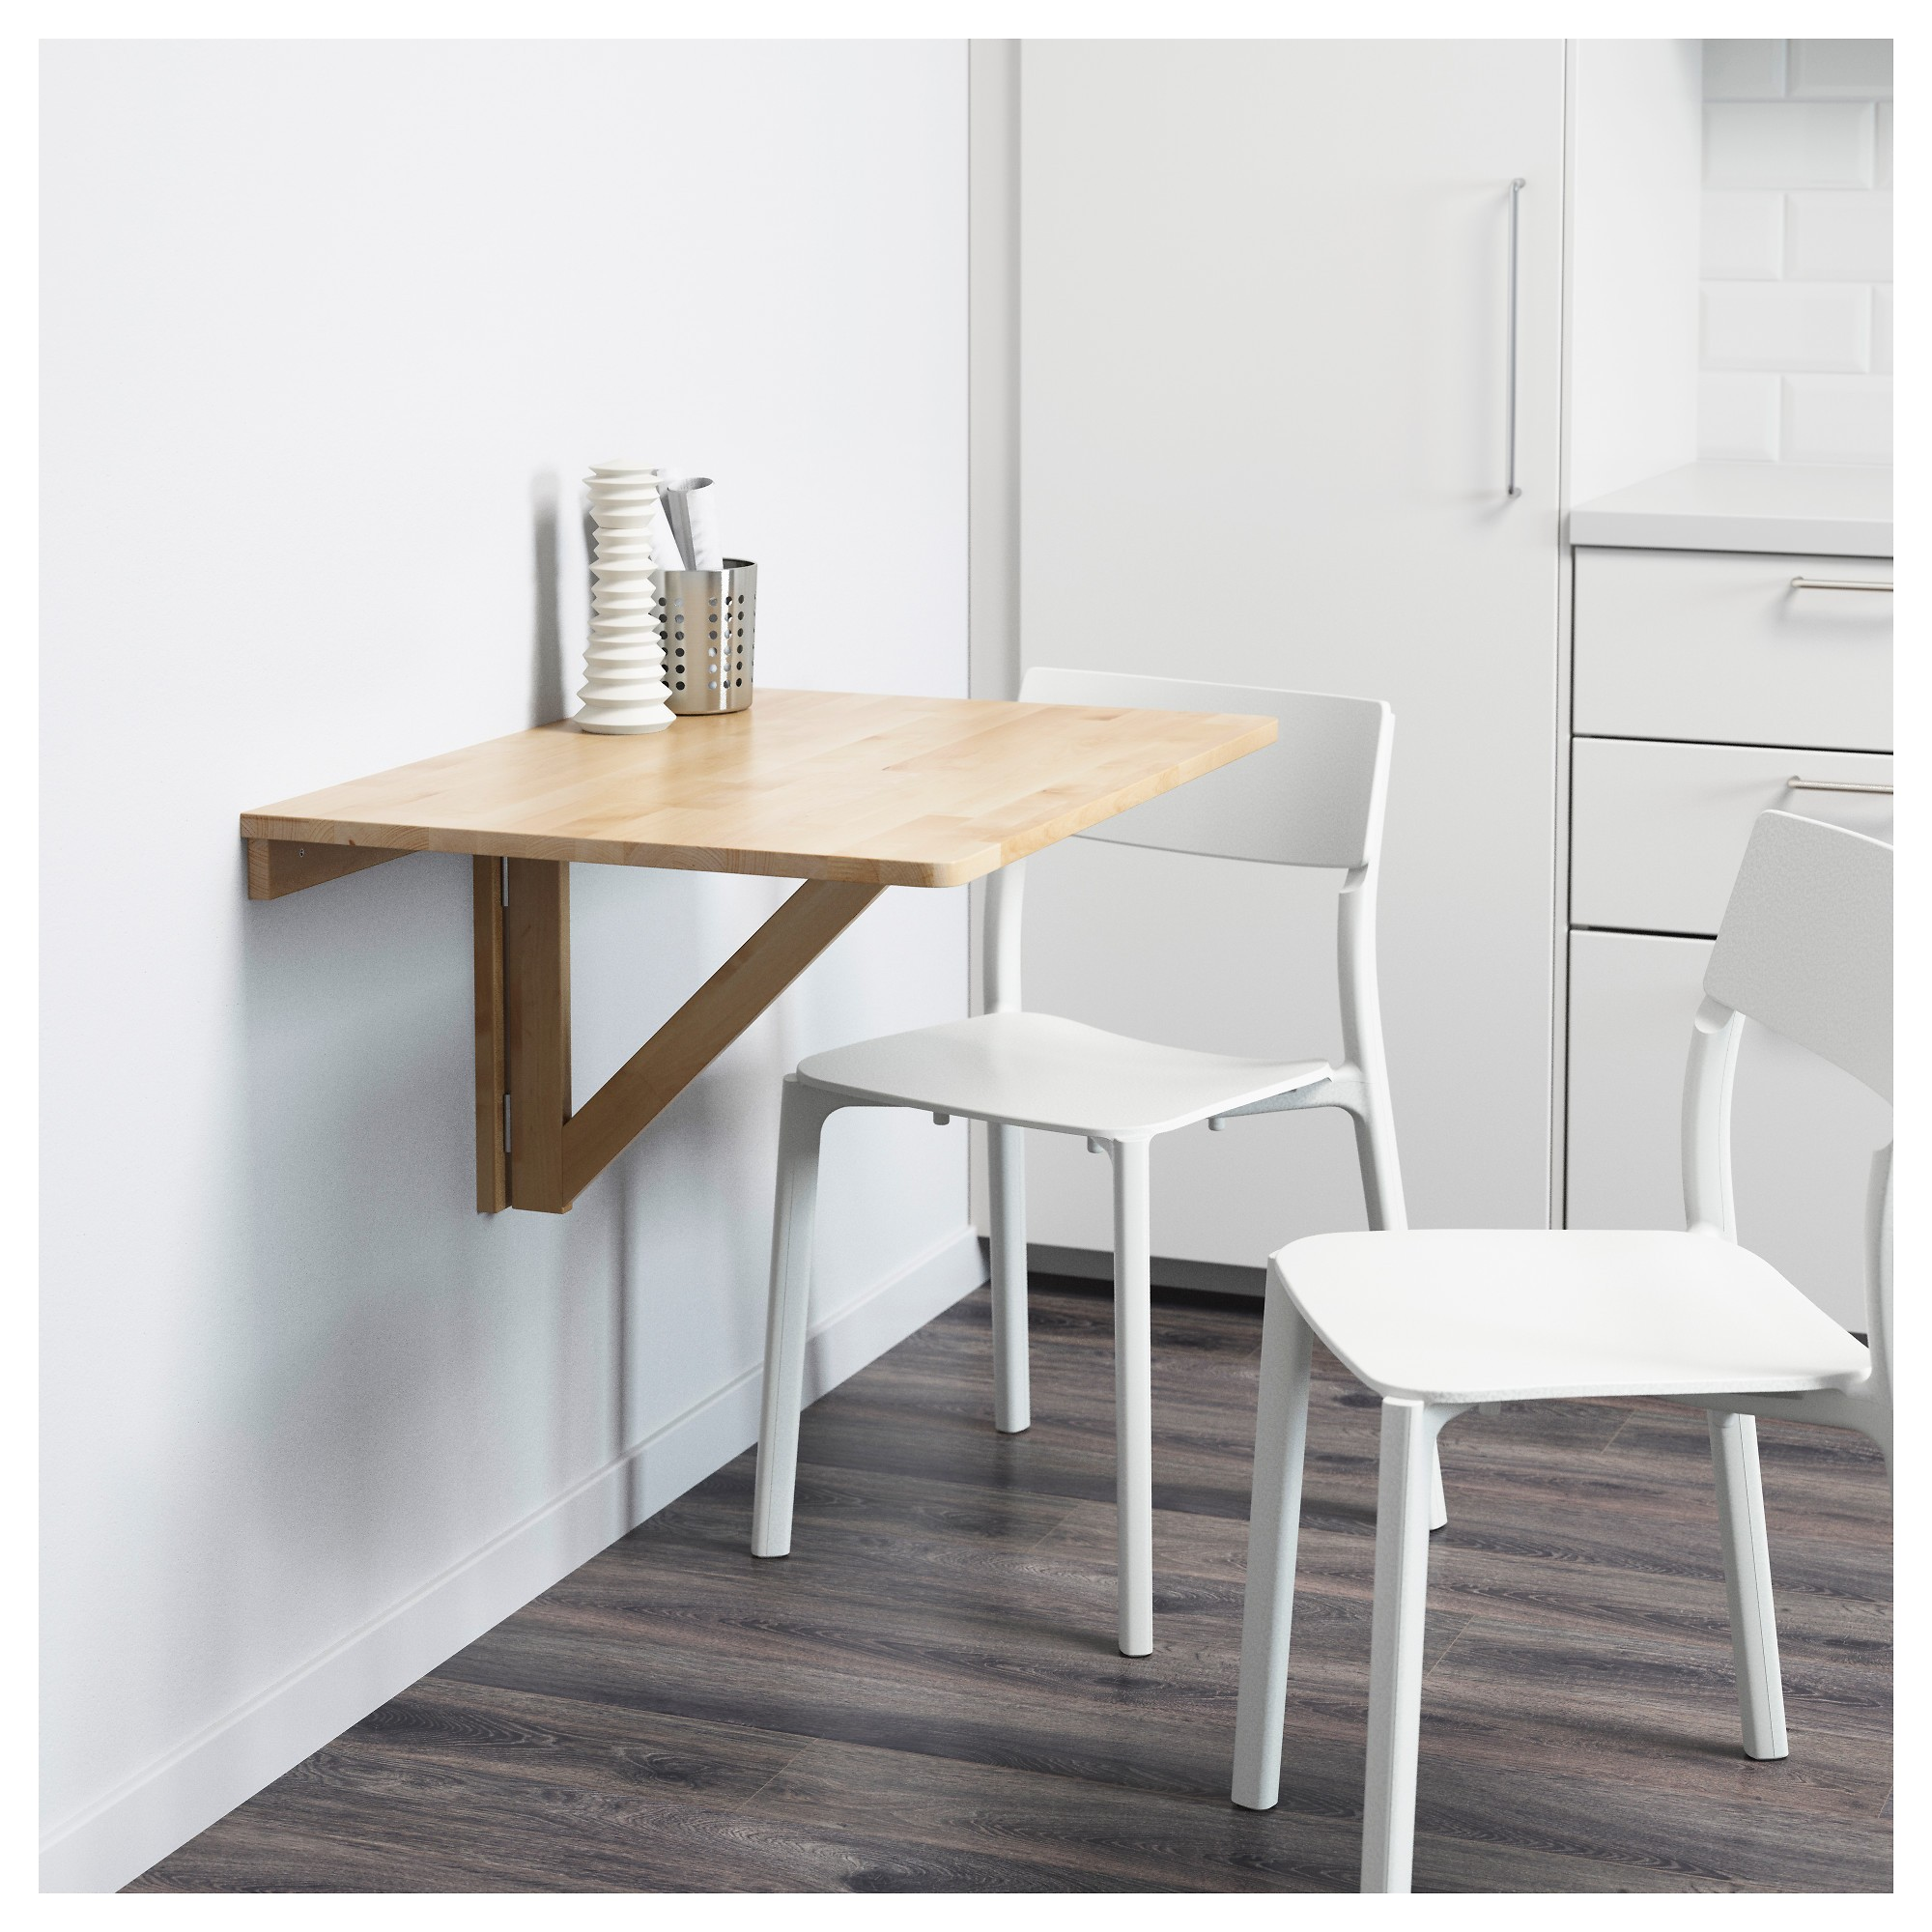 Table cuisine pliante murale ikea cuisine id es de for Table de cuisine murale pliable